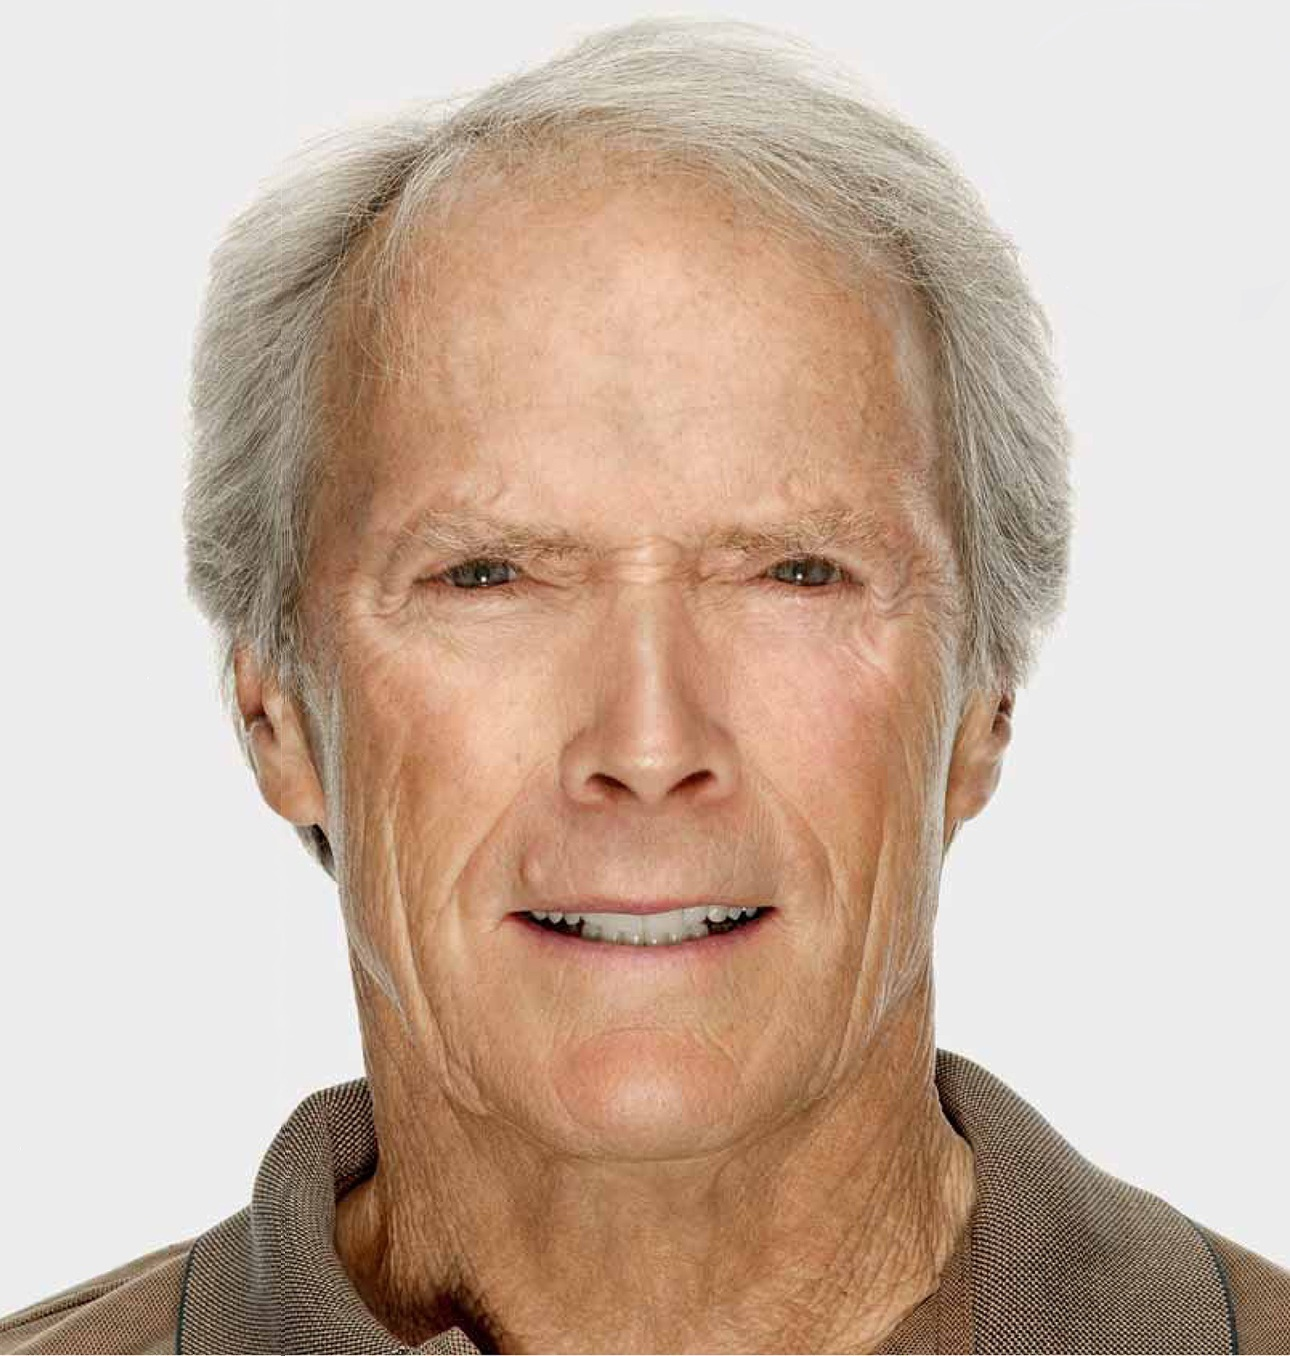 clint eastwood HD Wallpaper